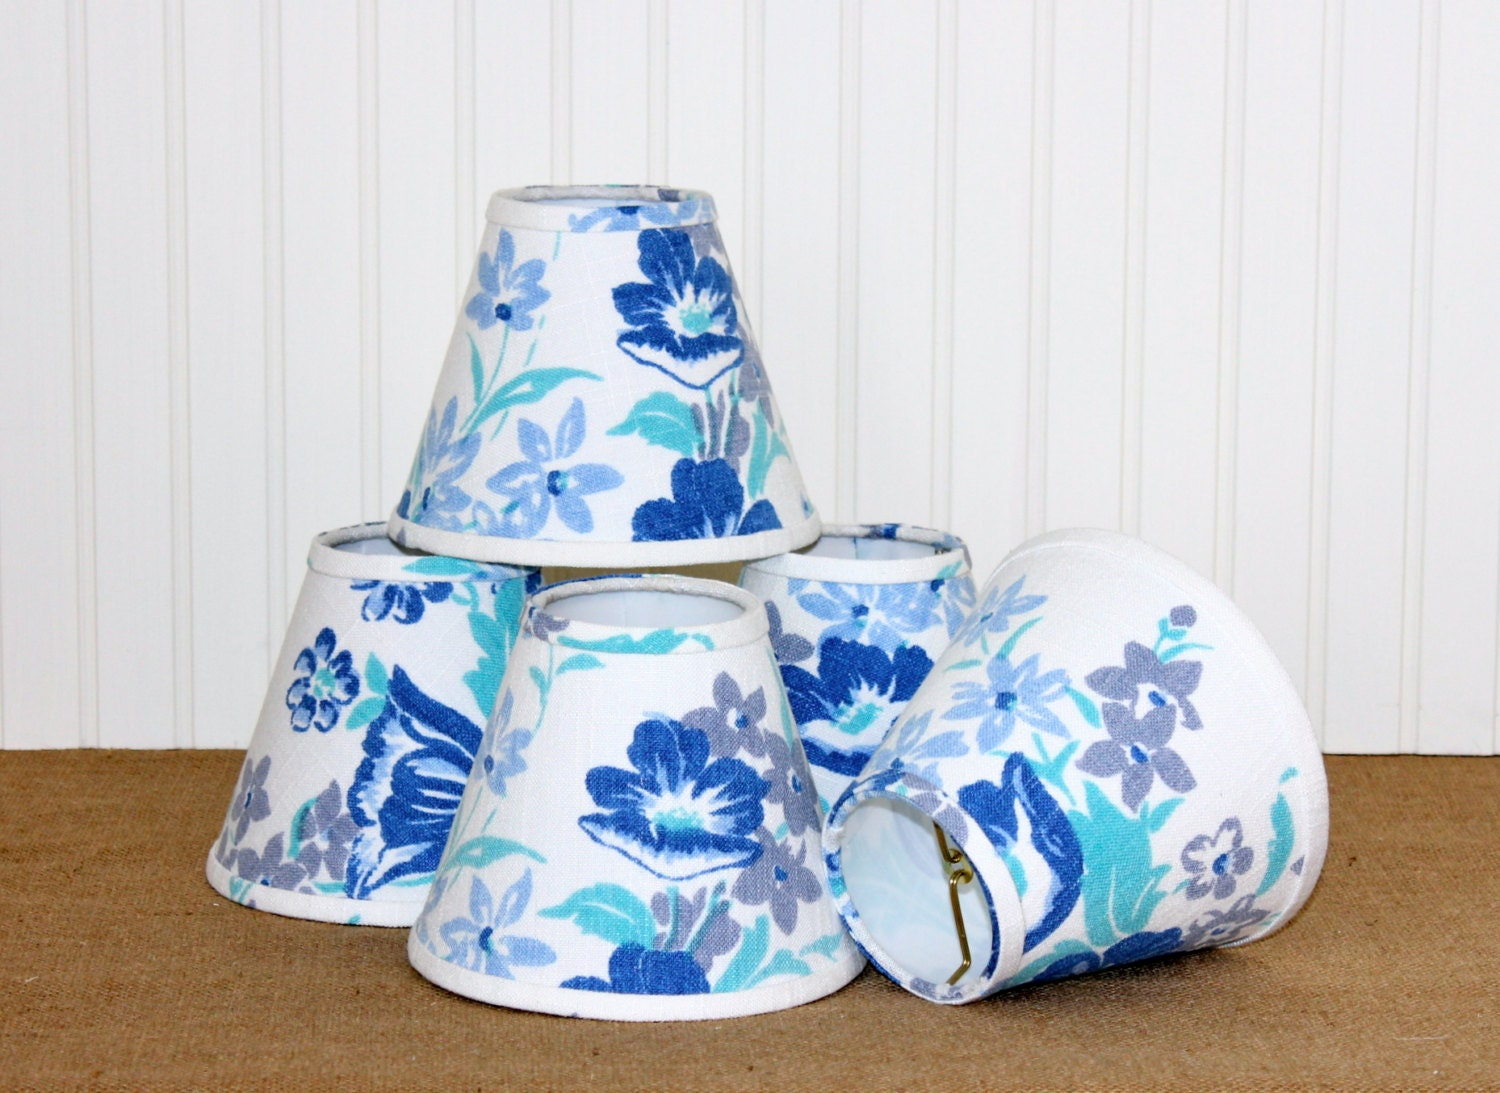 Chandelier Lamp Shade Lampshade Sconce Vintage Blue Floral